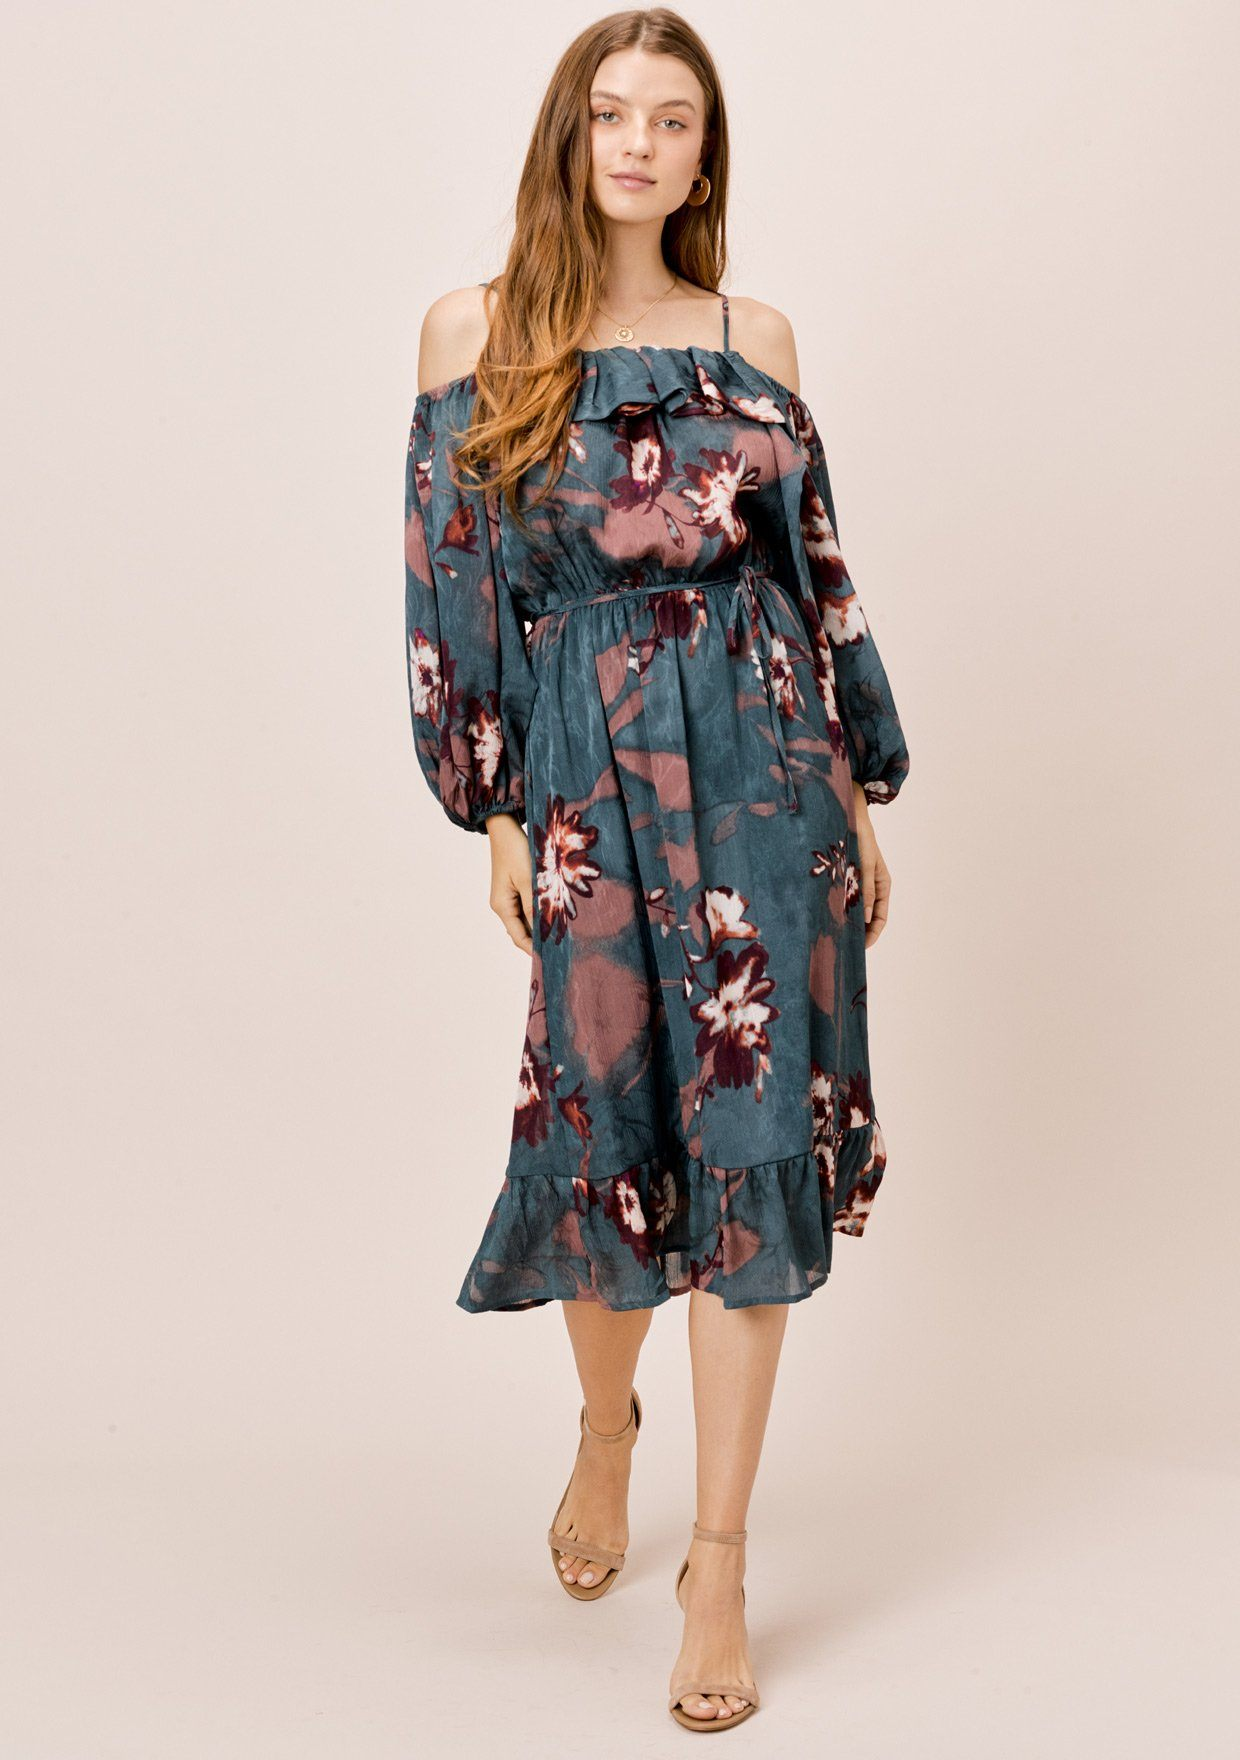 [Color: Dirty Teal] Lovestitch teal floral midi dress with cold shoulder, volume sleeve and flounce